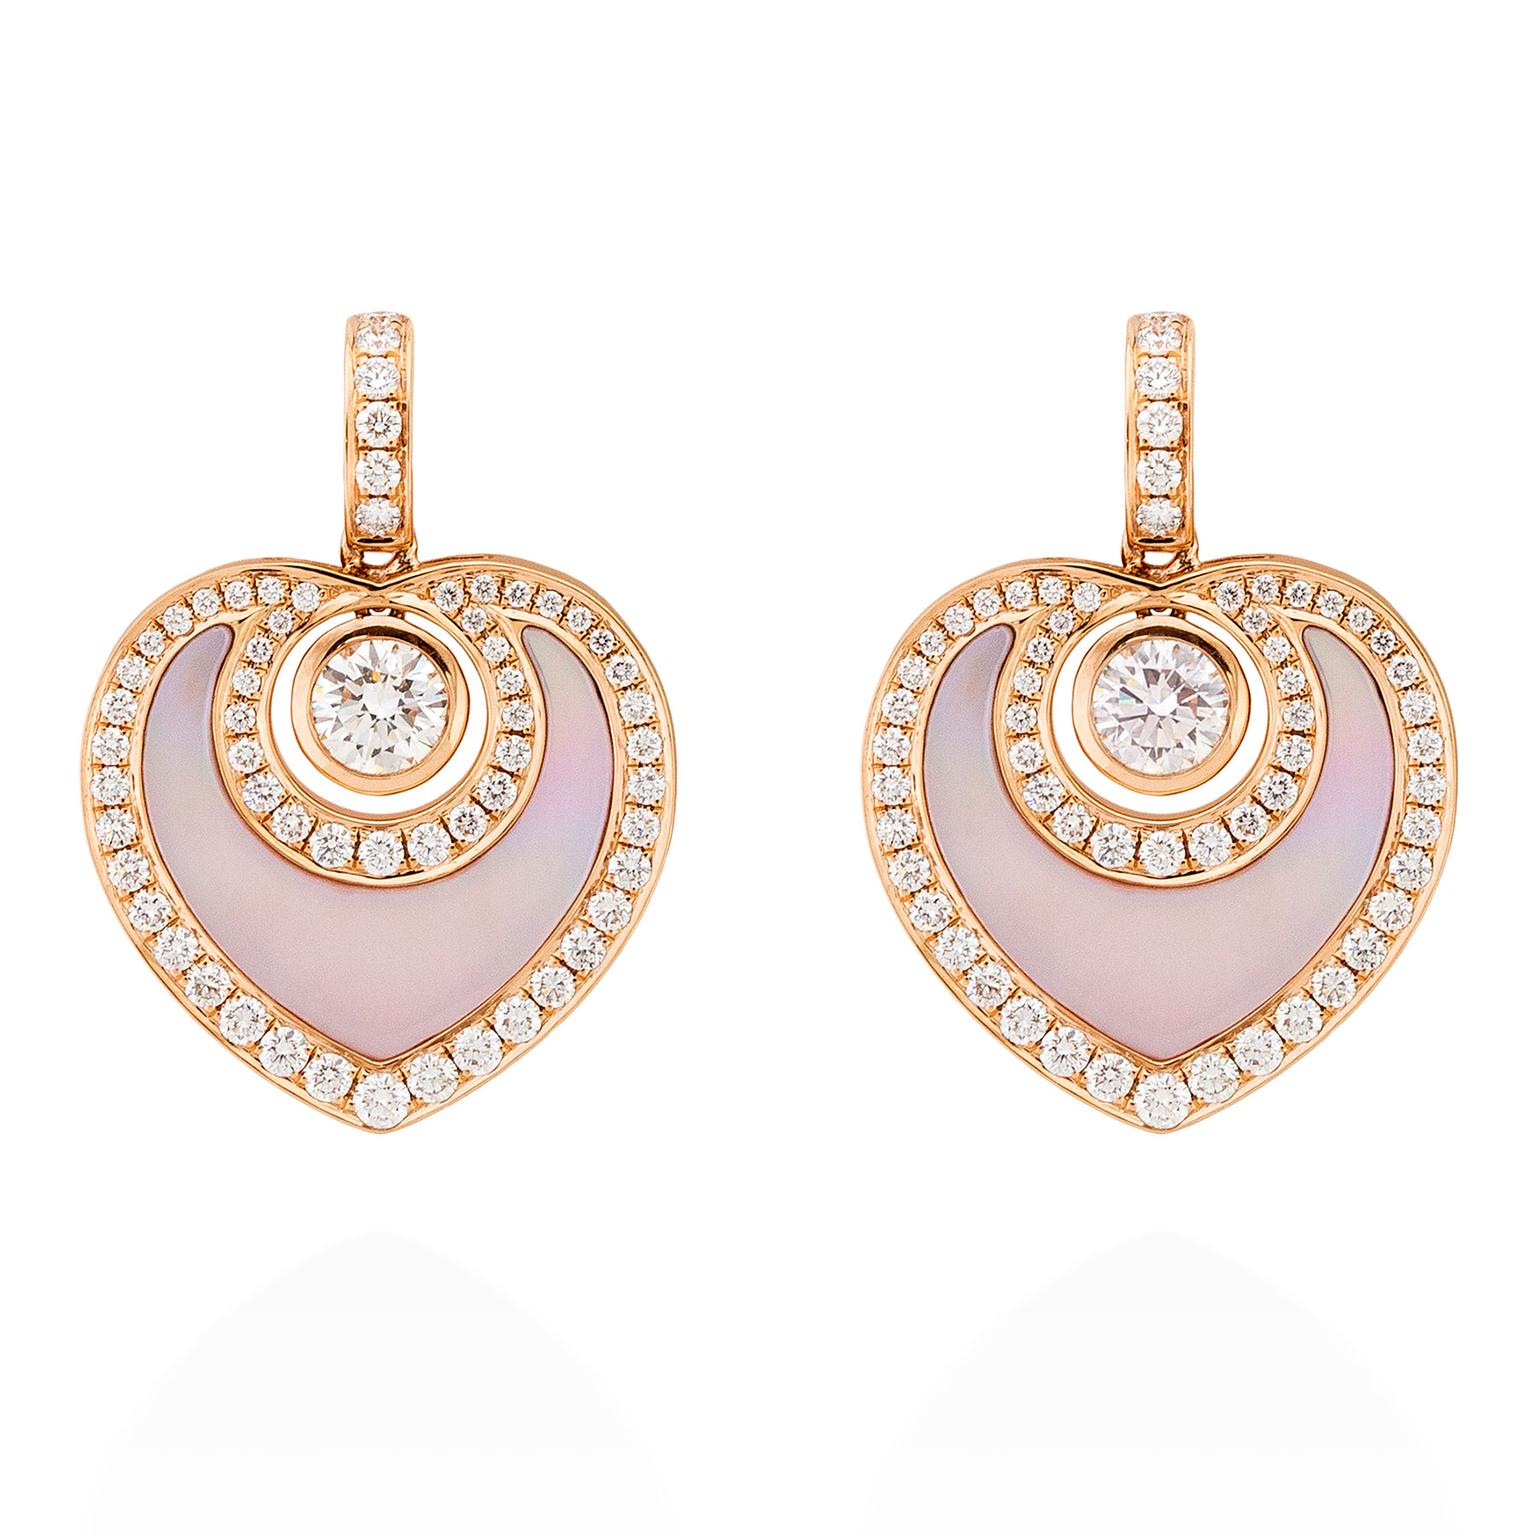 Boodles Sophie rose gold, diamond and mother-of-pearl earrings